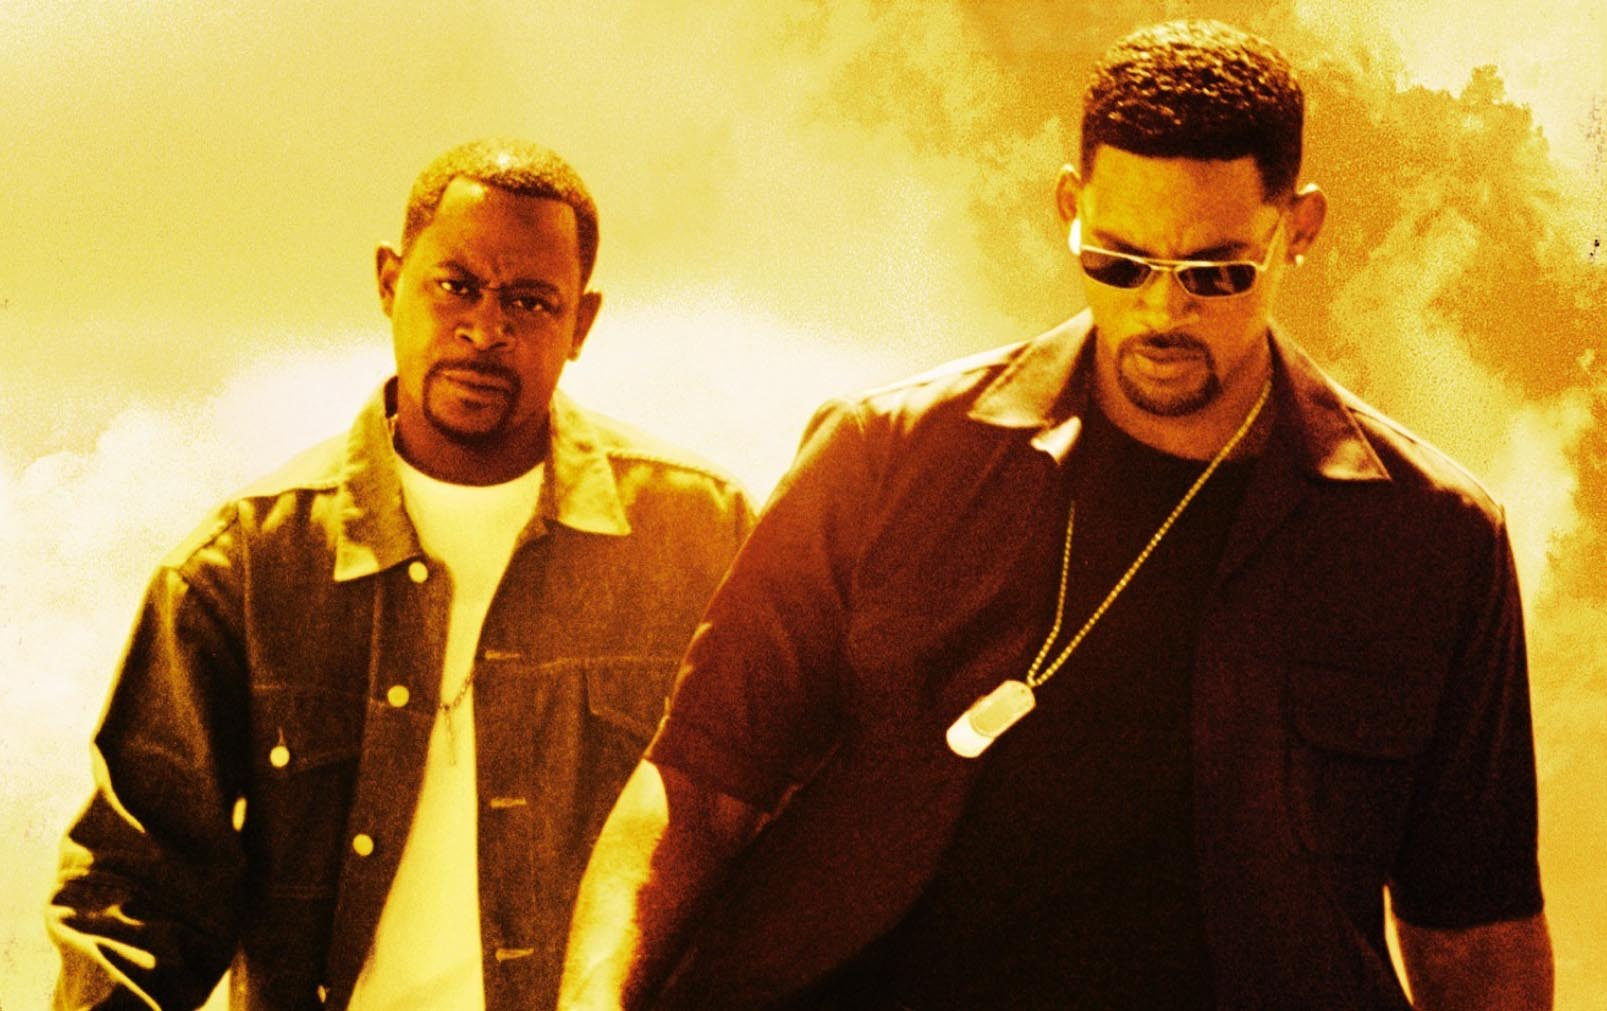 BAD BOYS III & IV CONFIRMED